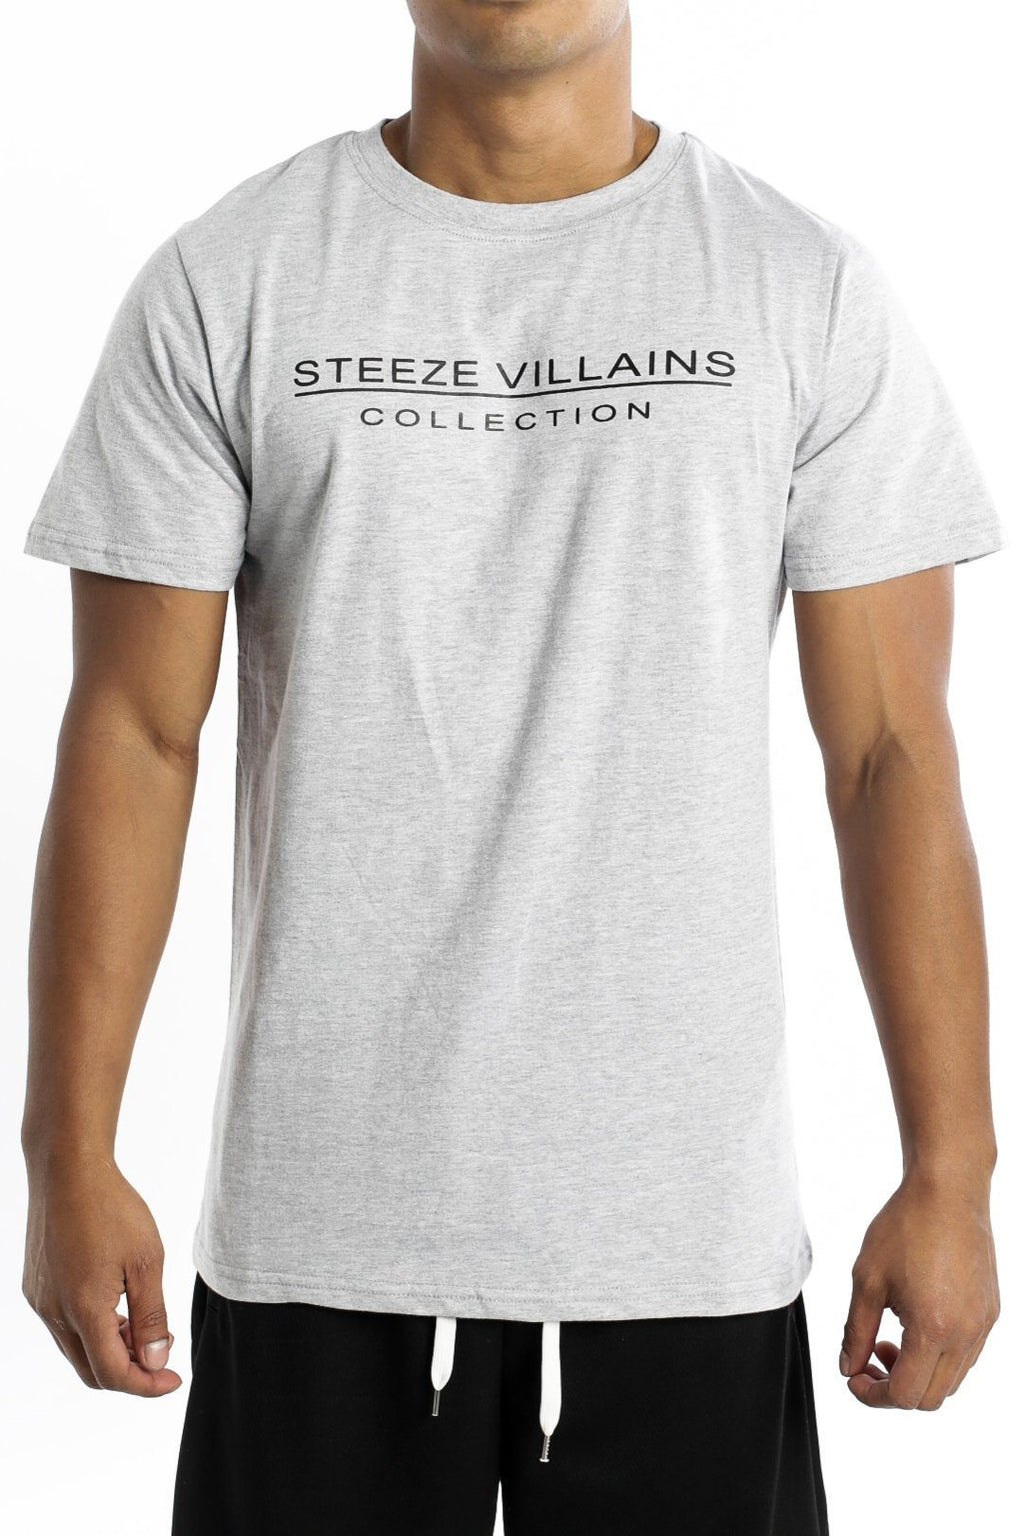 COLLECTION TEE GREY STEEZE VILLANS Imperial Clothing